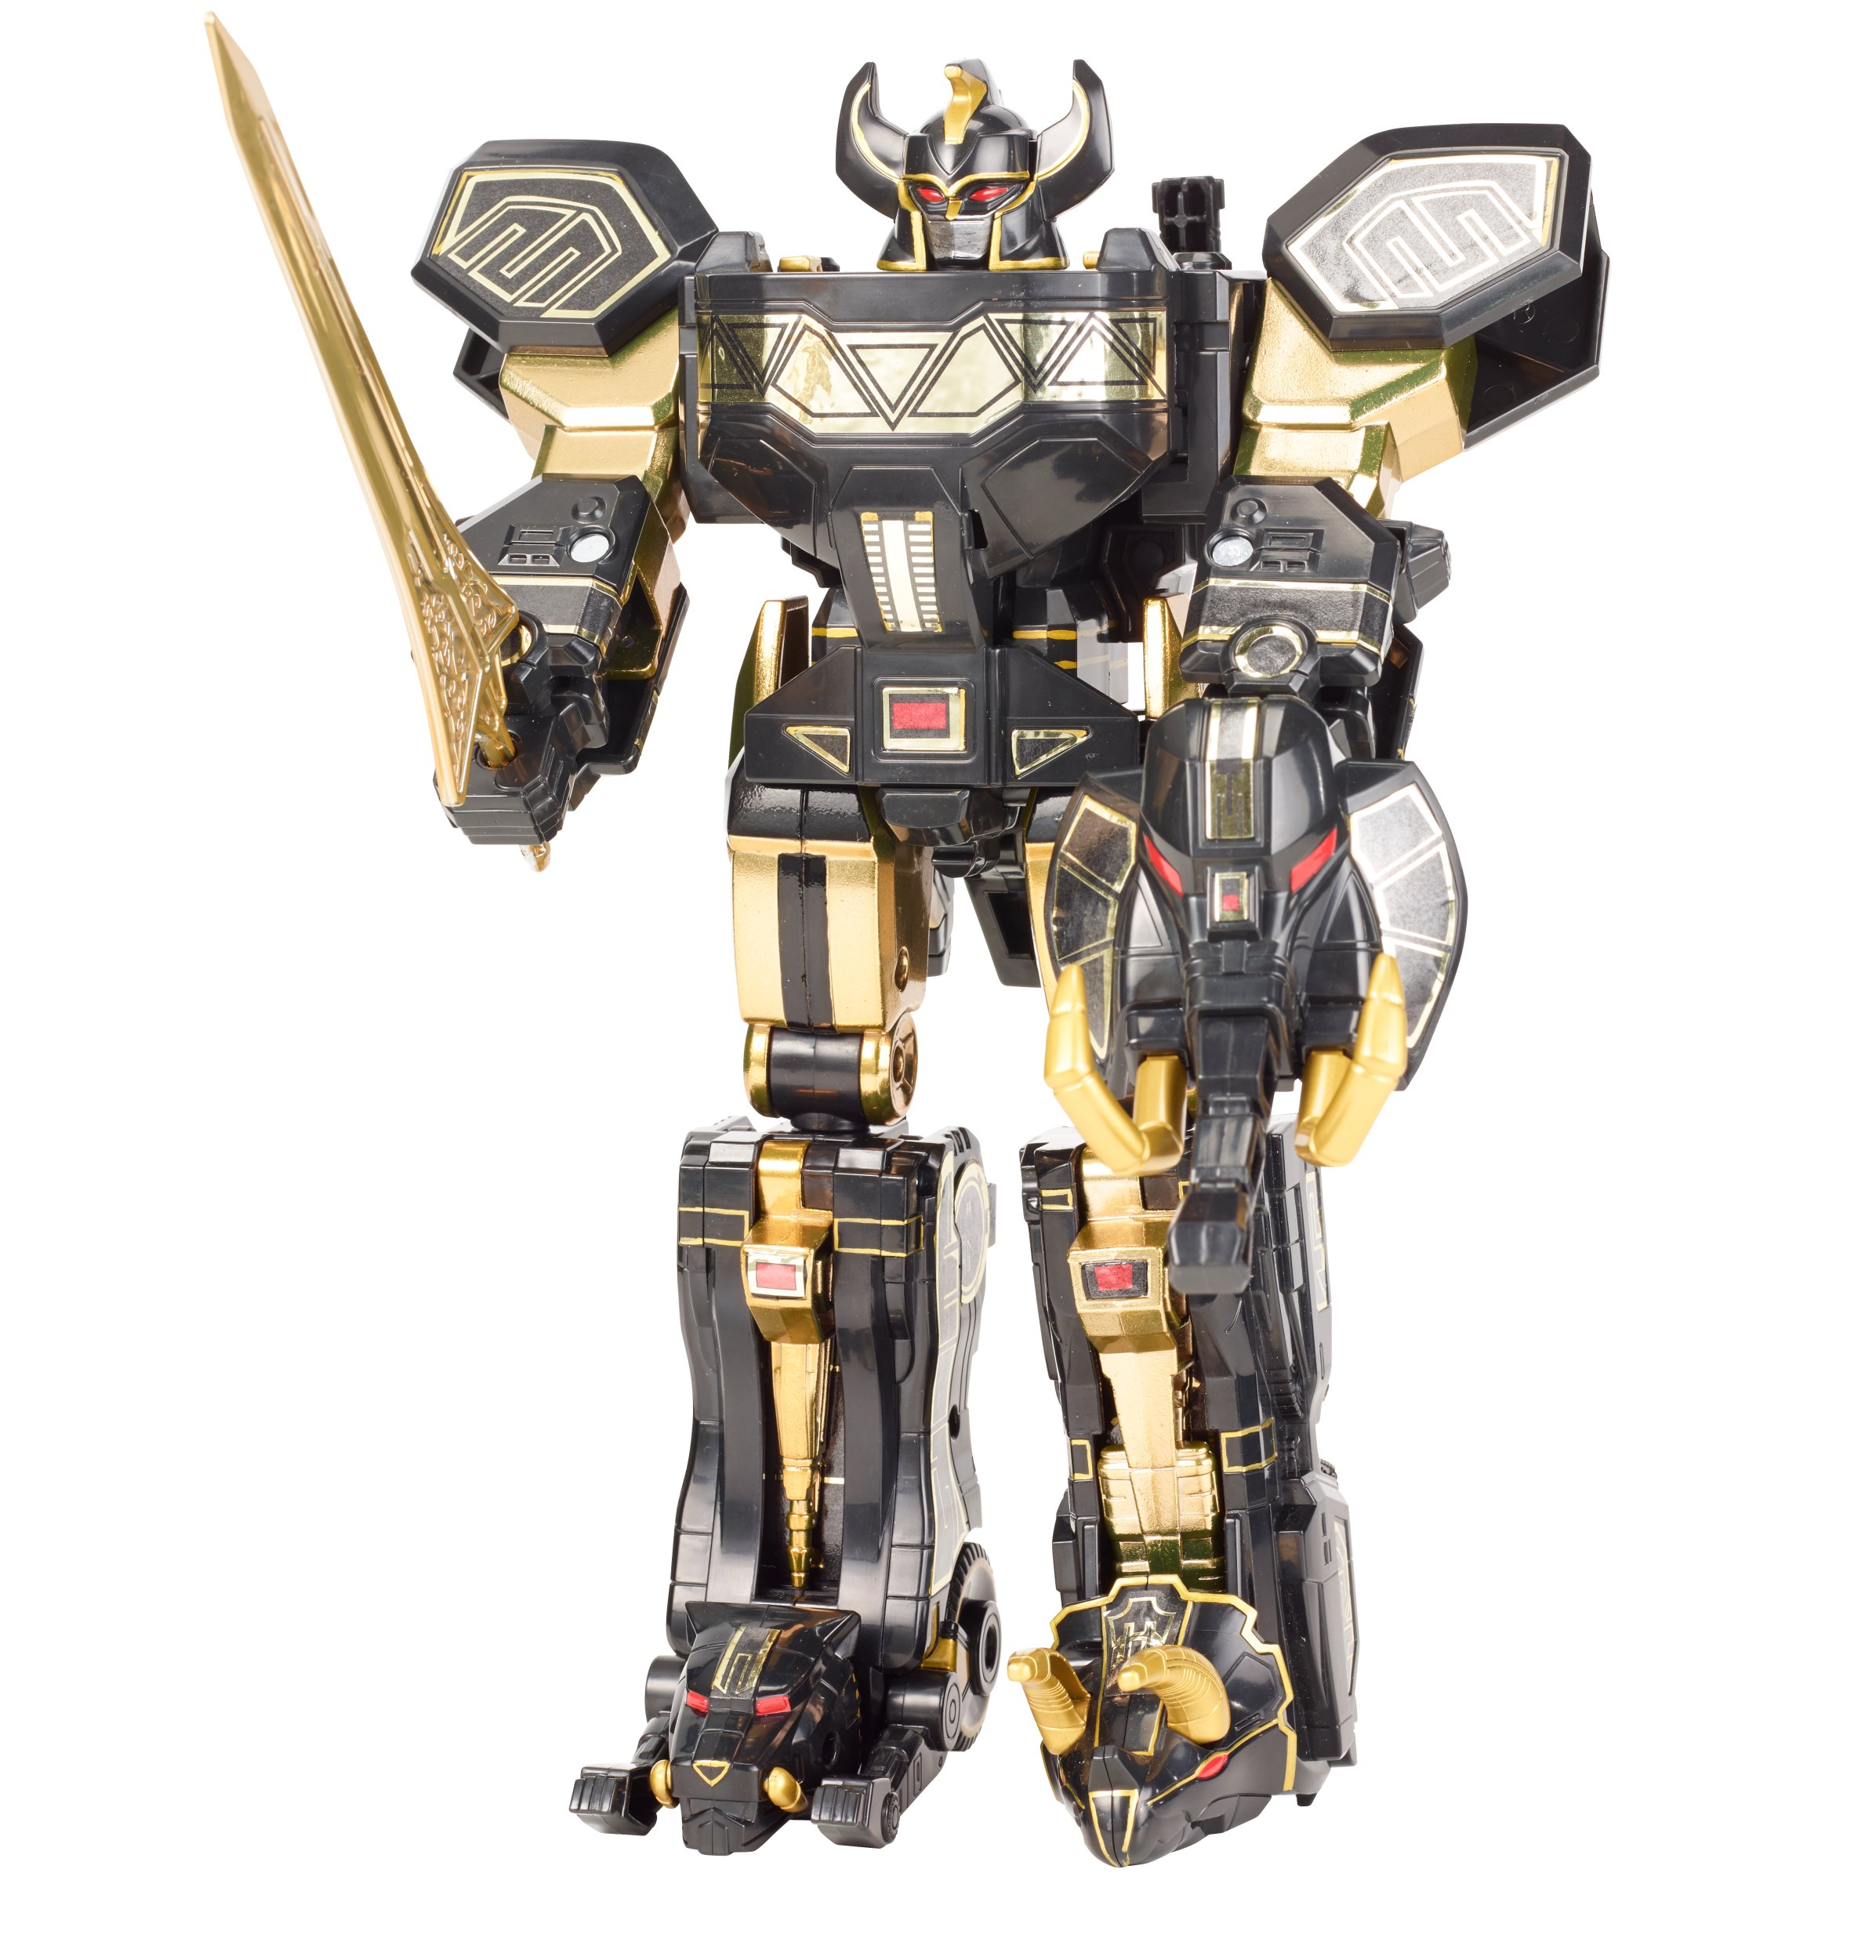 power-rangers-limited-black-edition-legacy-megazord-141329